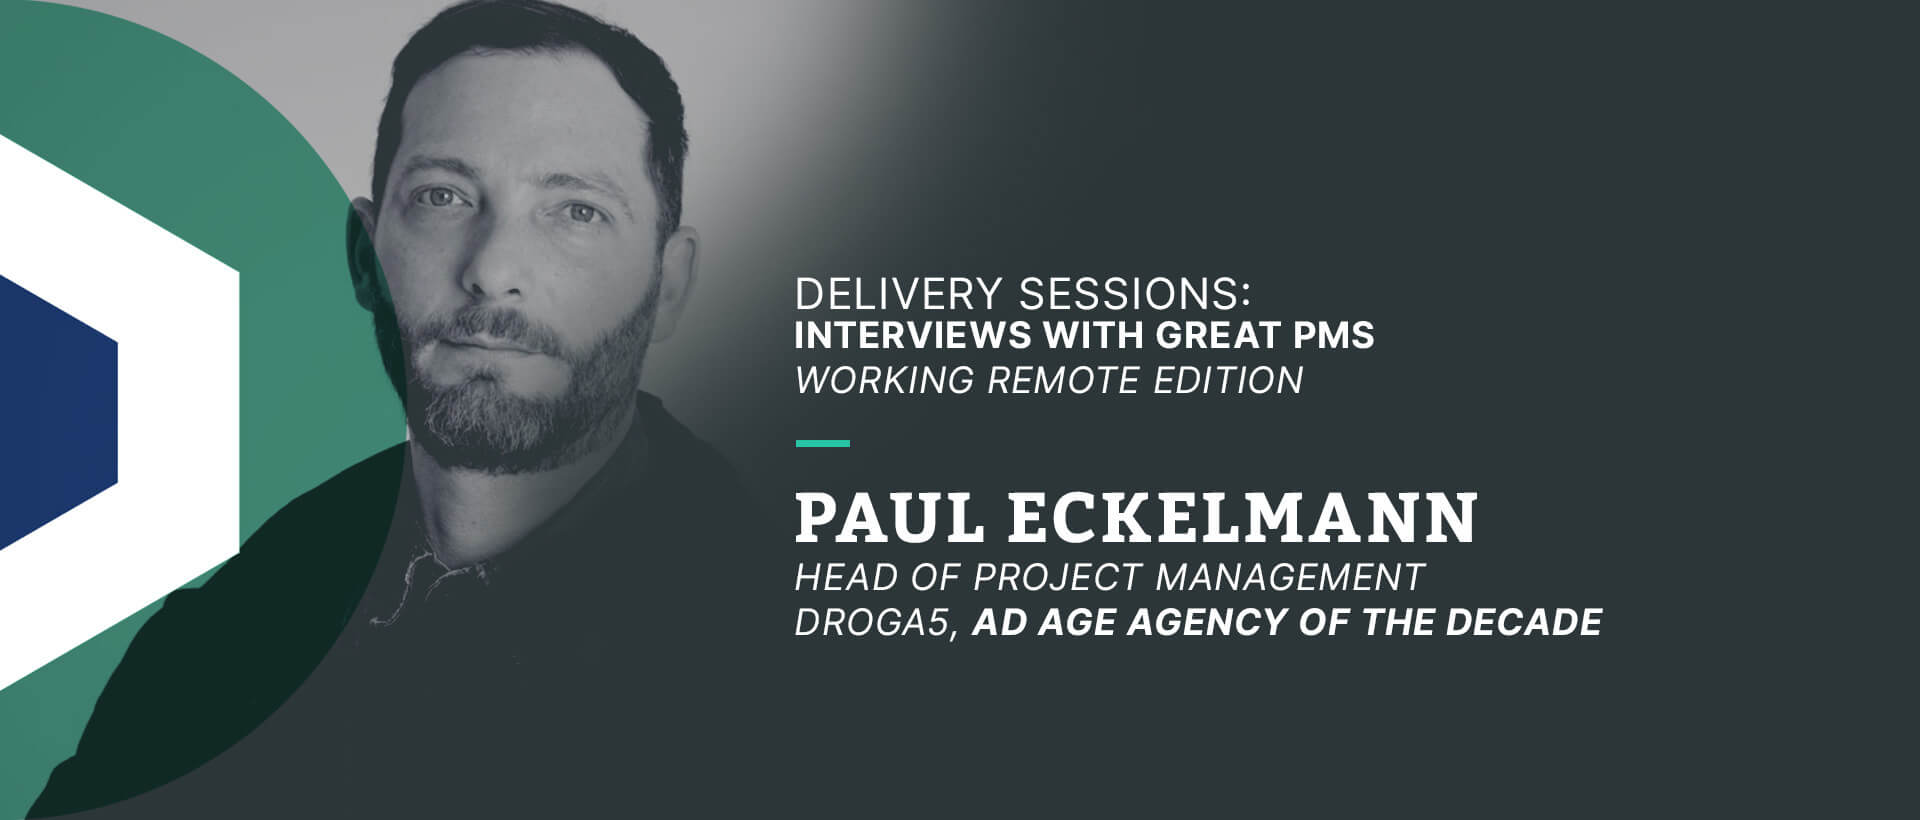 Working Remote Edition Paul Eckelmann, Head of Project Management, Droga5 - Ad Age Agency of the Decade